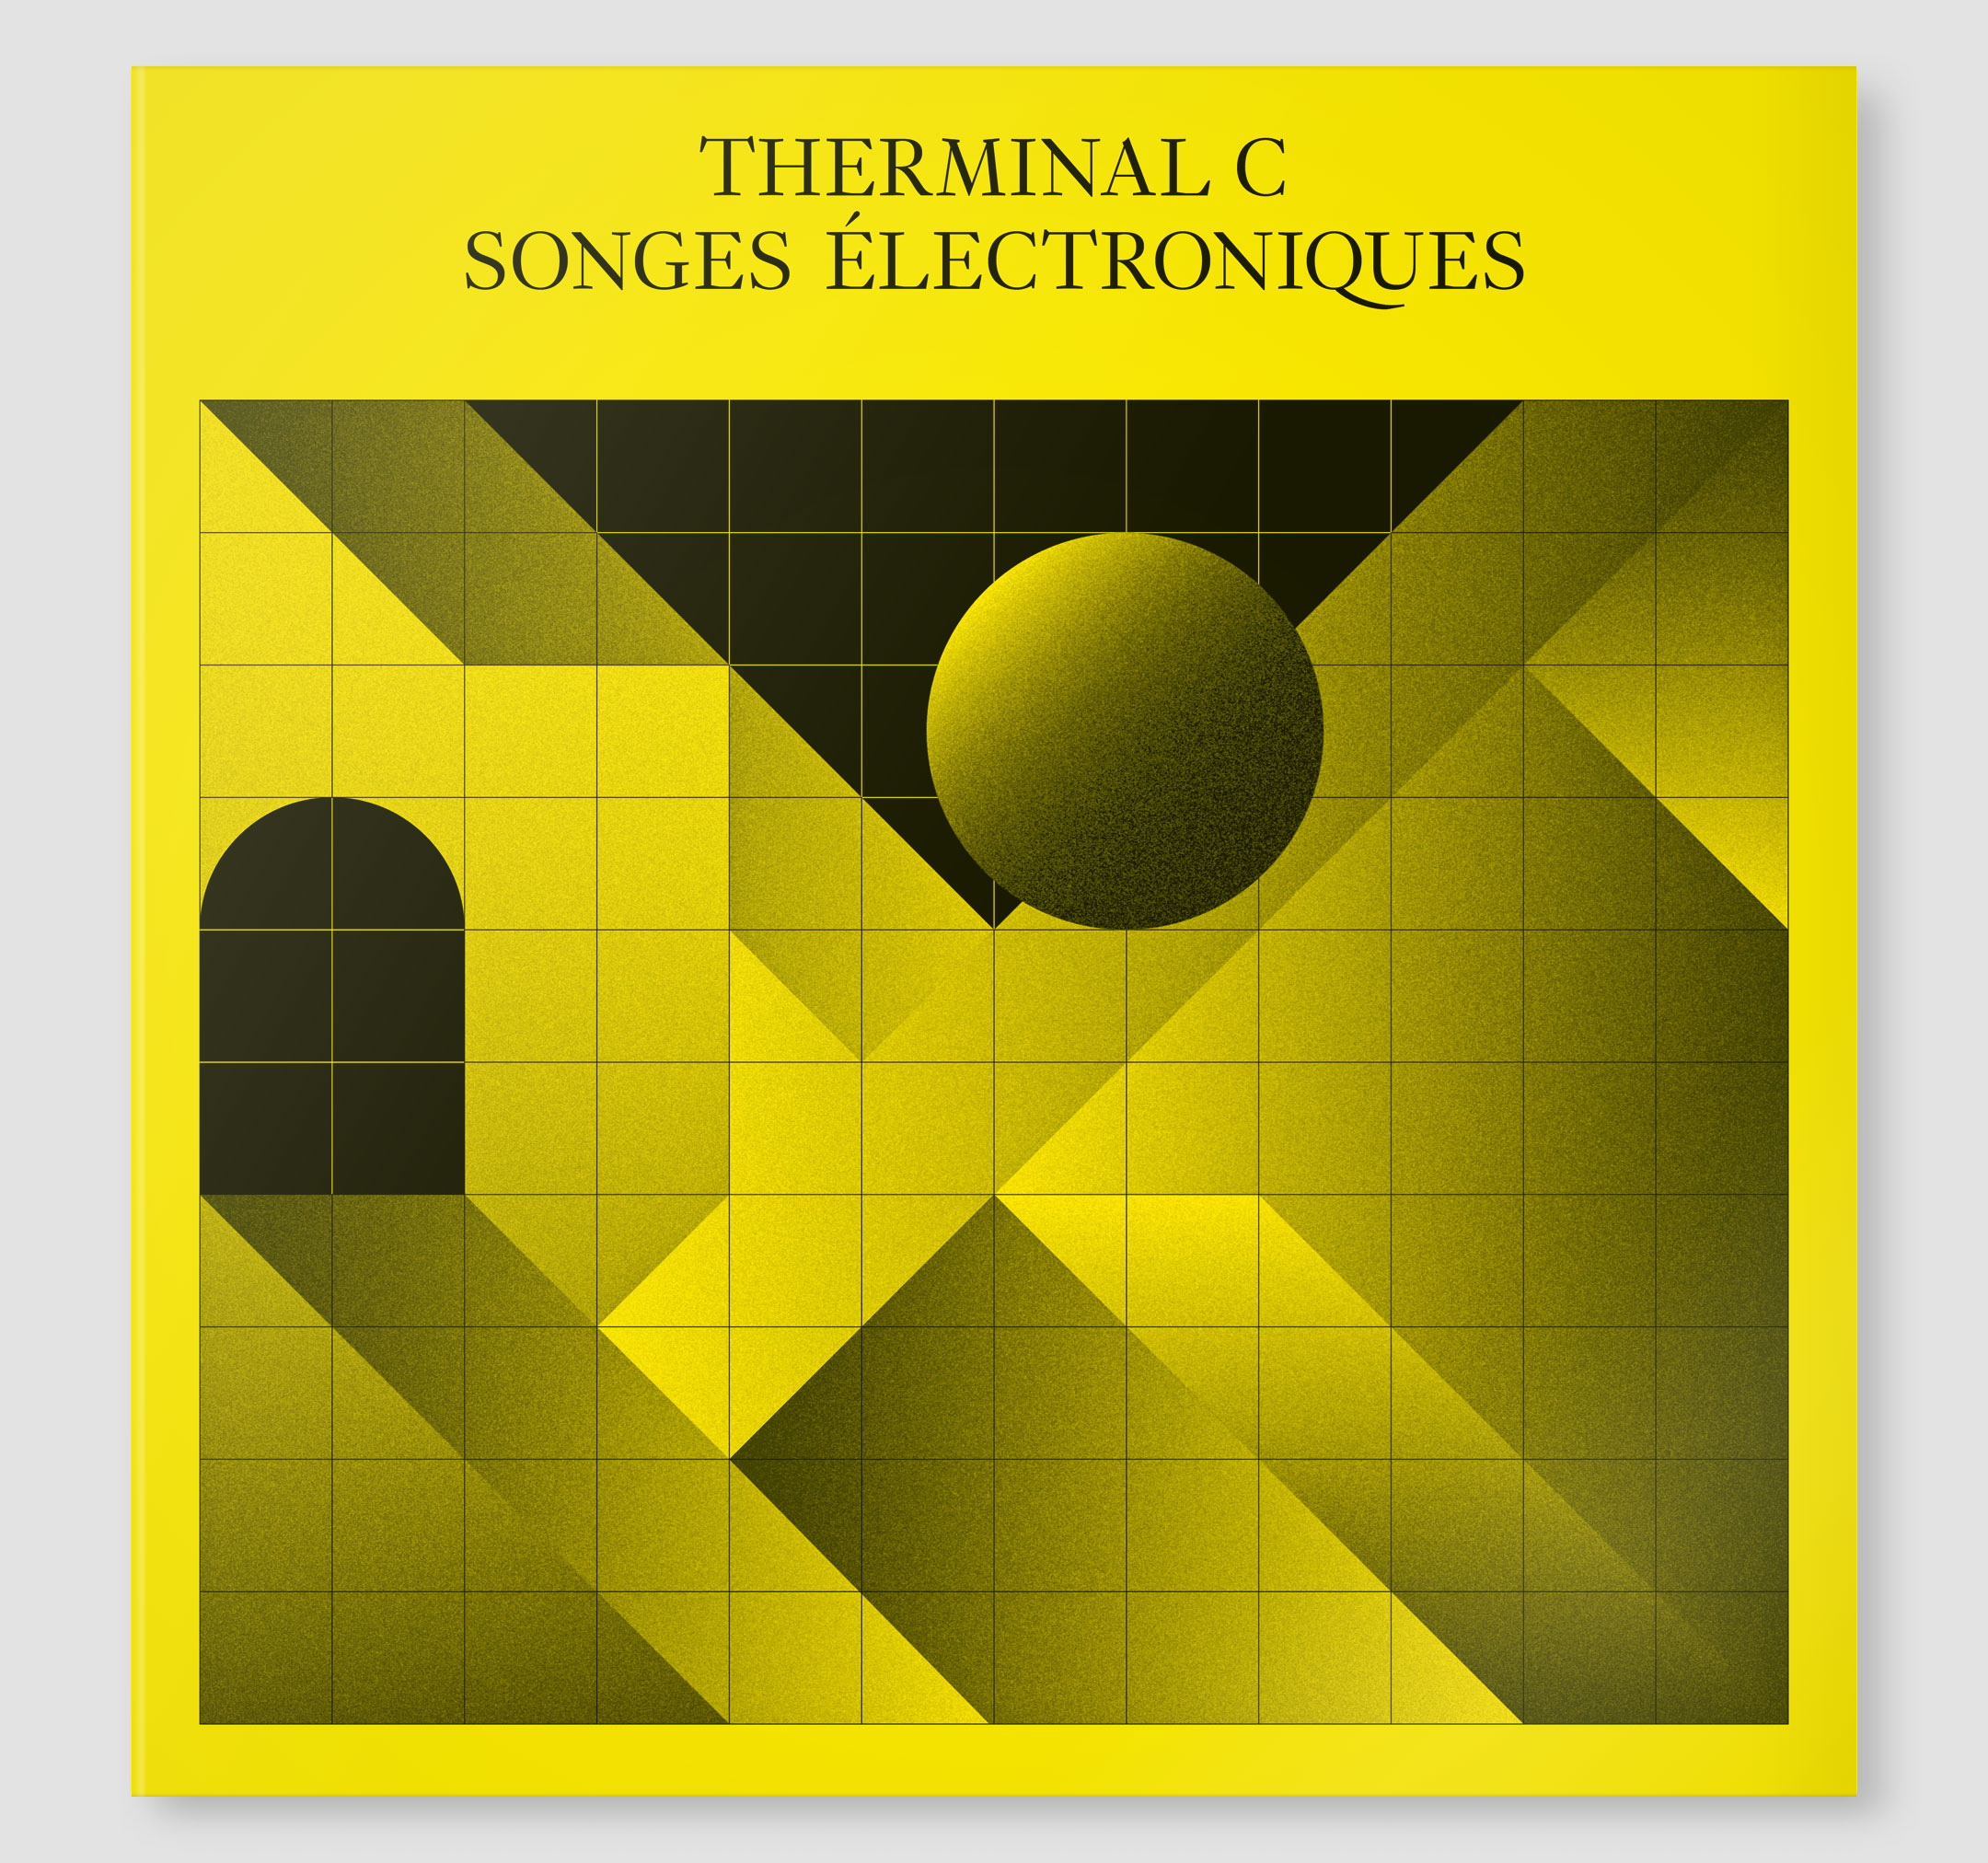 Therminal C, Songes Electroniques